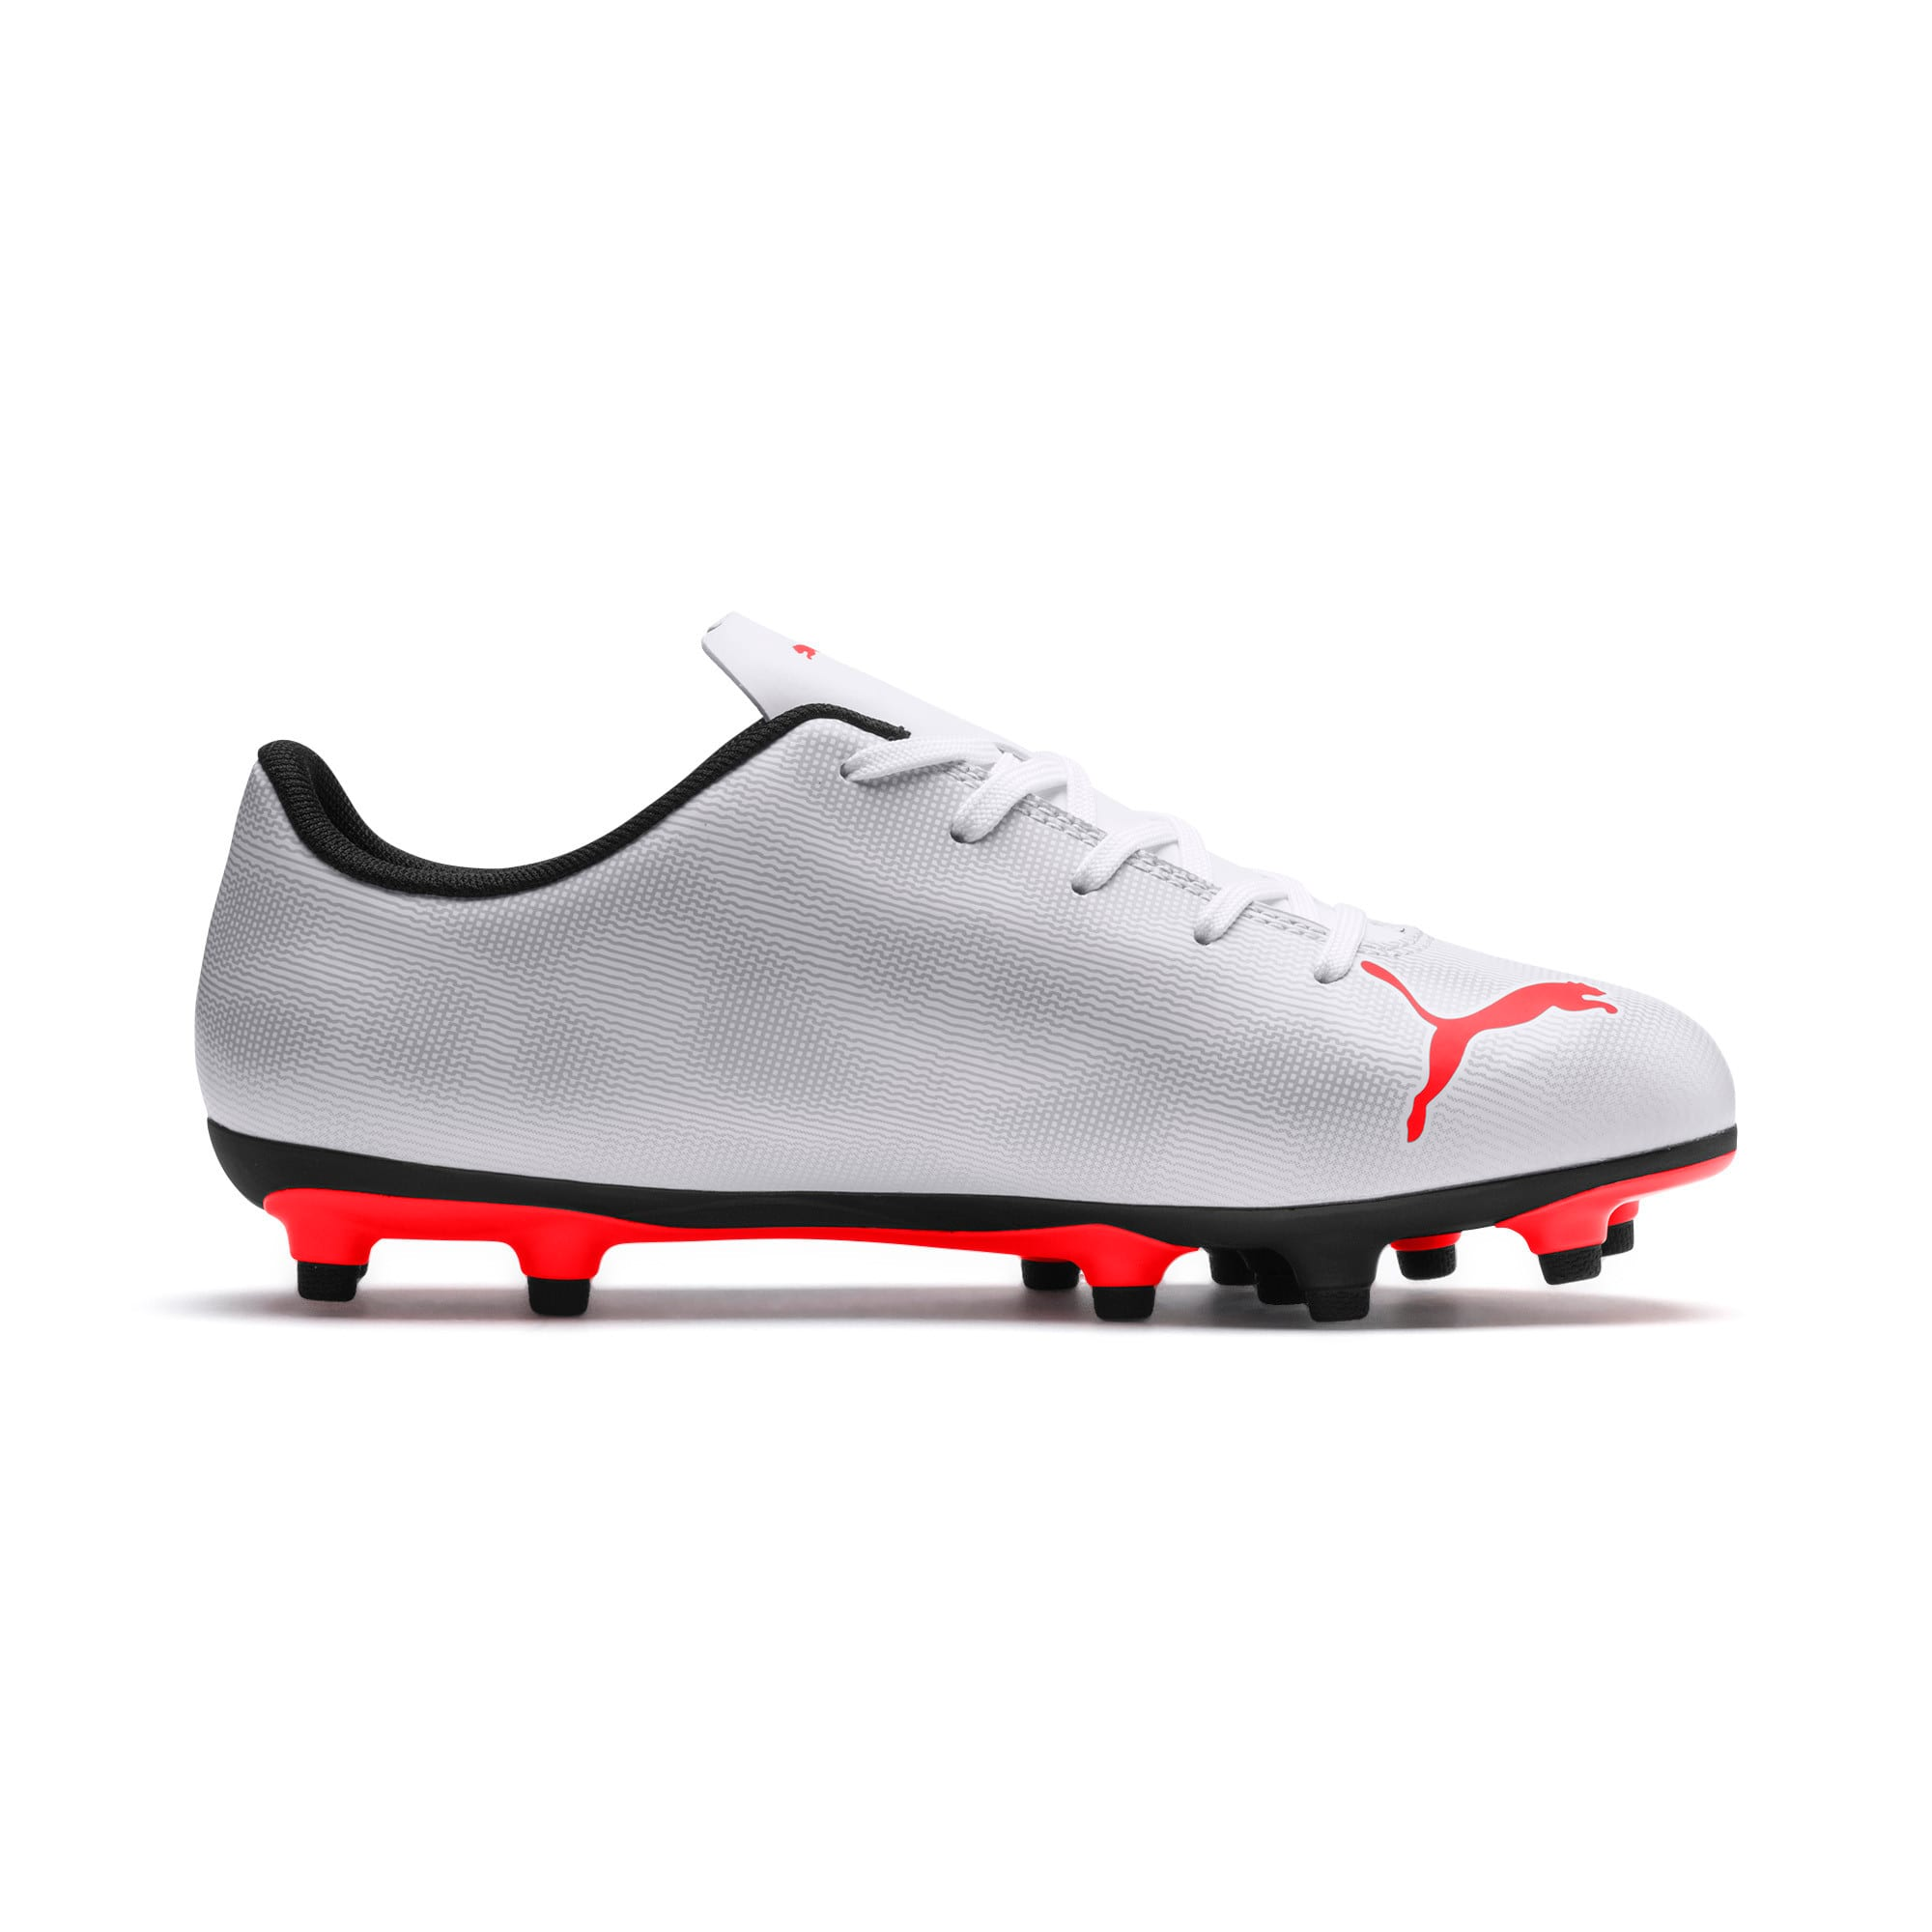 Thumbnail 5 of Rapido FG Youth Football Boots, White-Gray-Black-Red Blast, medium-IND